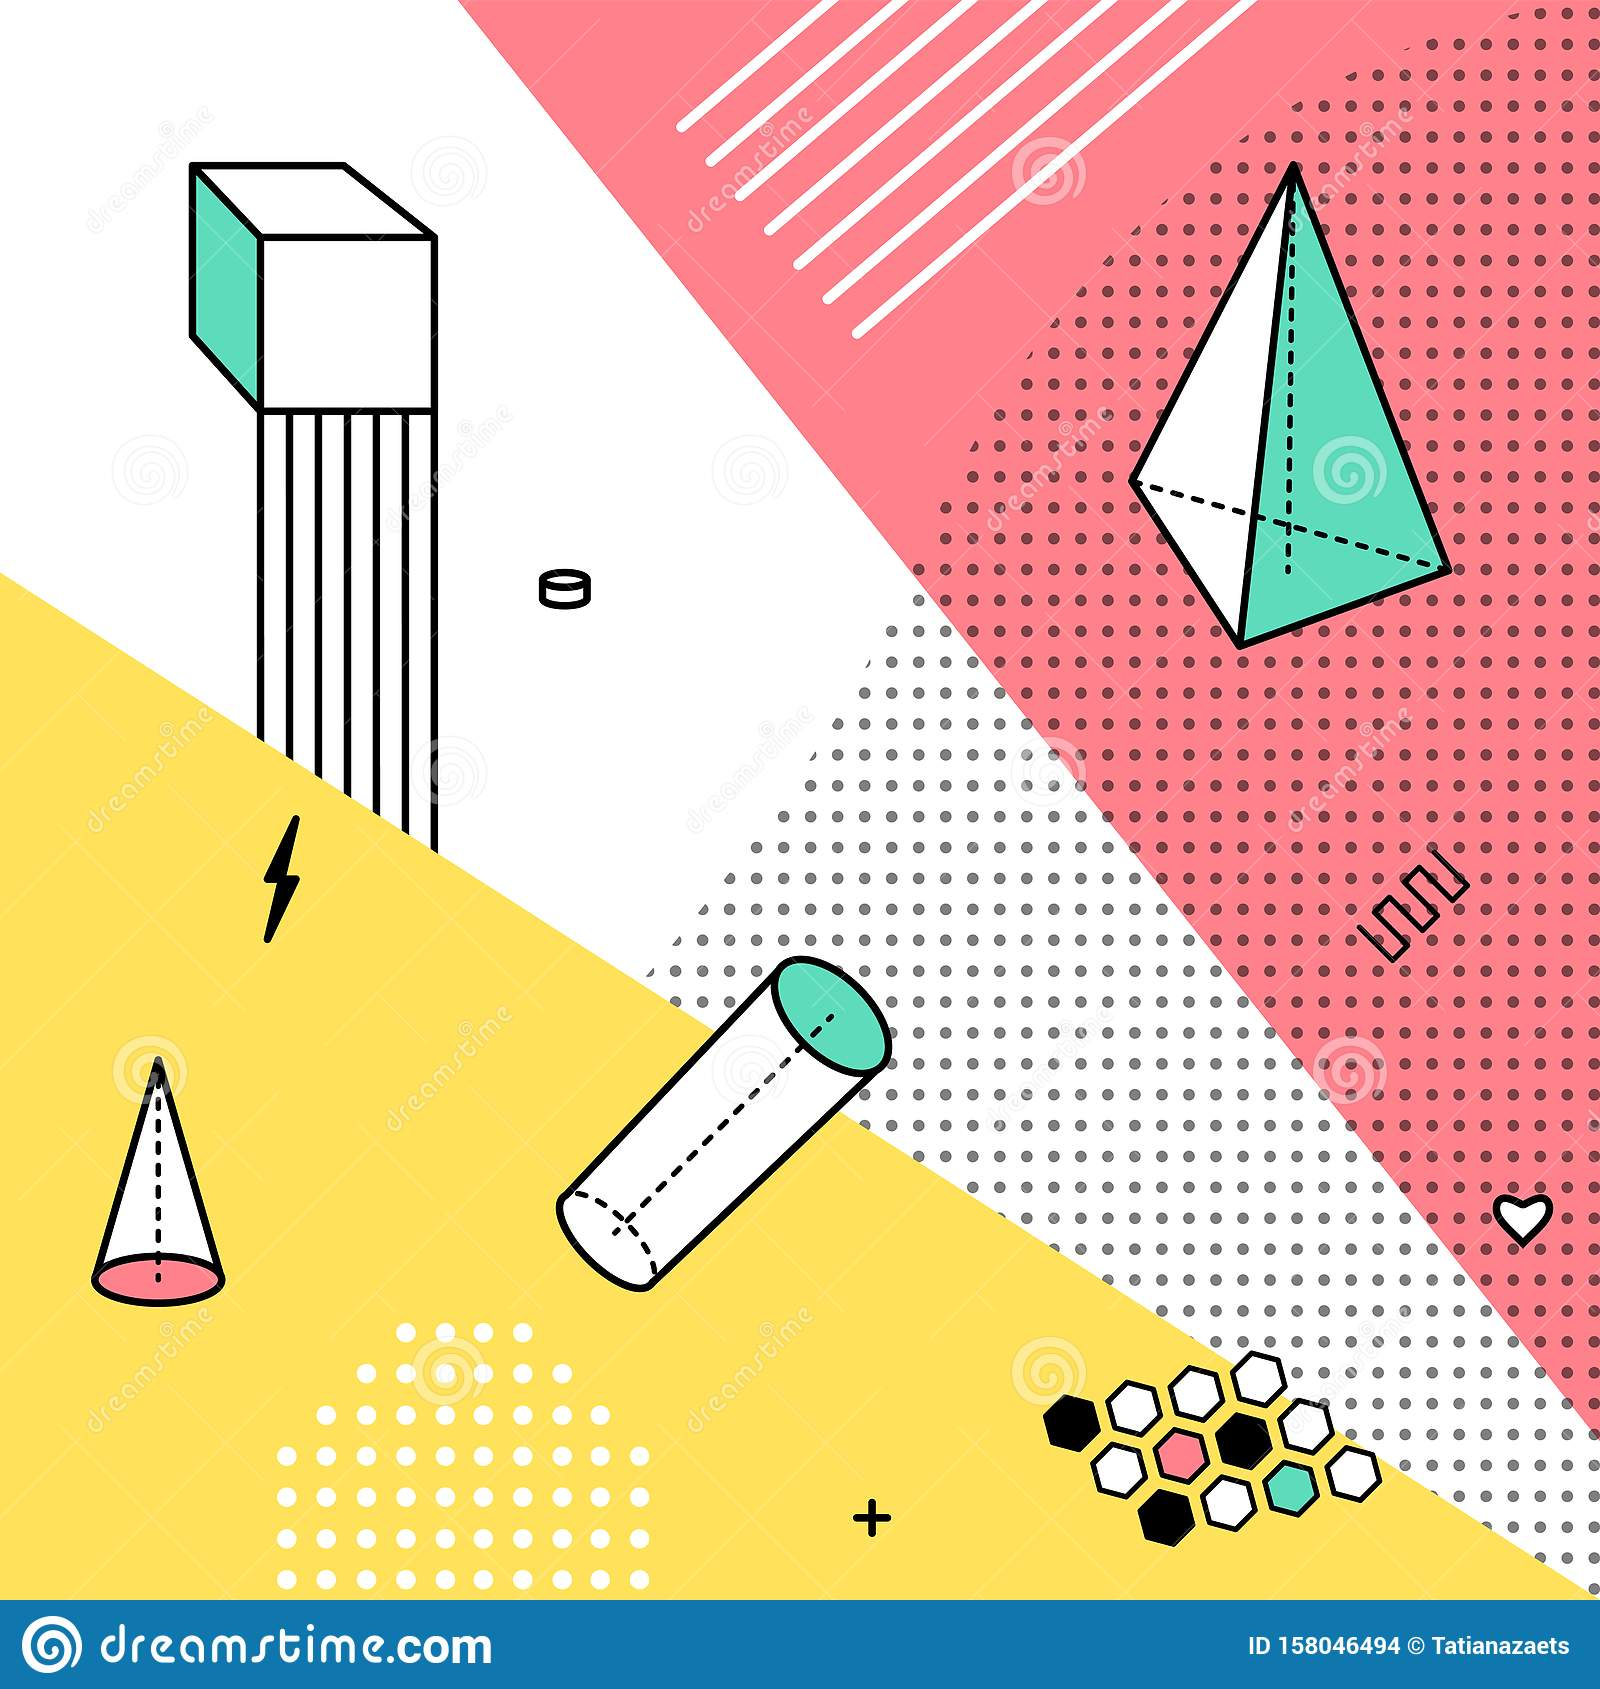 Color Pattern With Geometric Graphic Elements Geometrical Shapes Backdrop For Abstract Fashion Vector Background Design Stock Vector Illustration Of Element Memphis 158046494